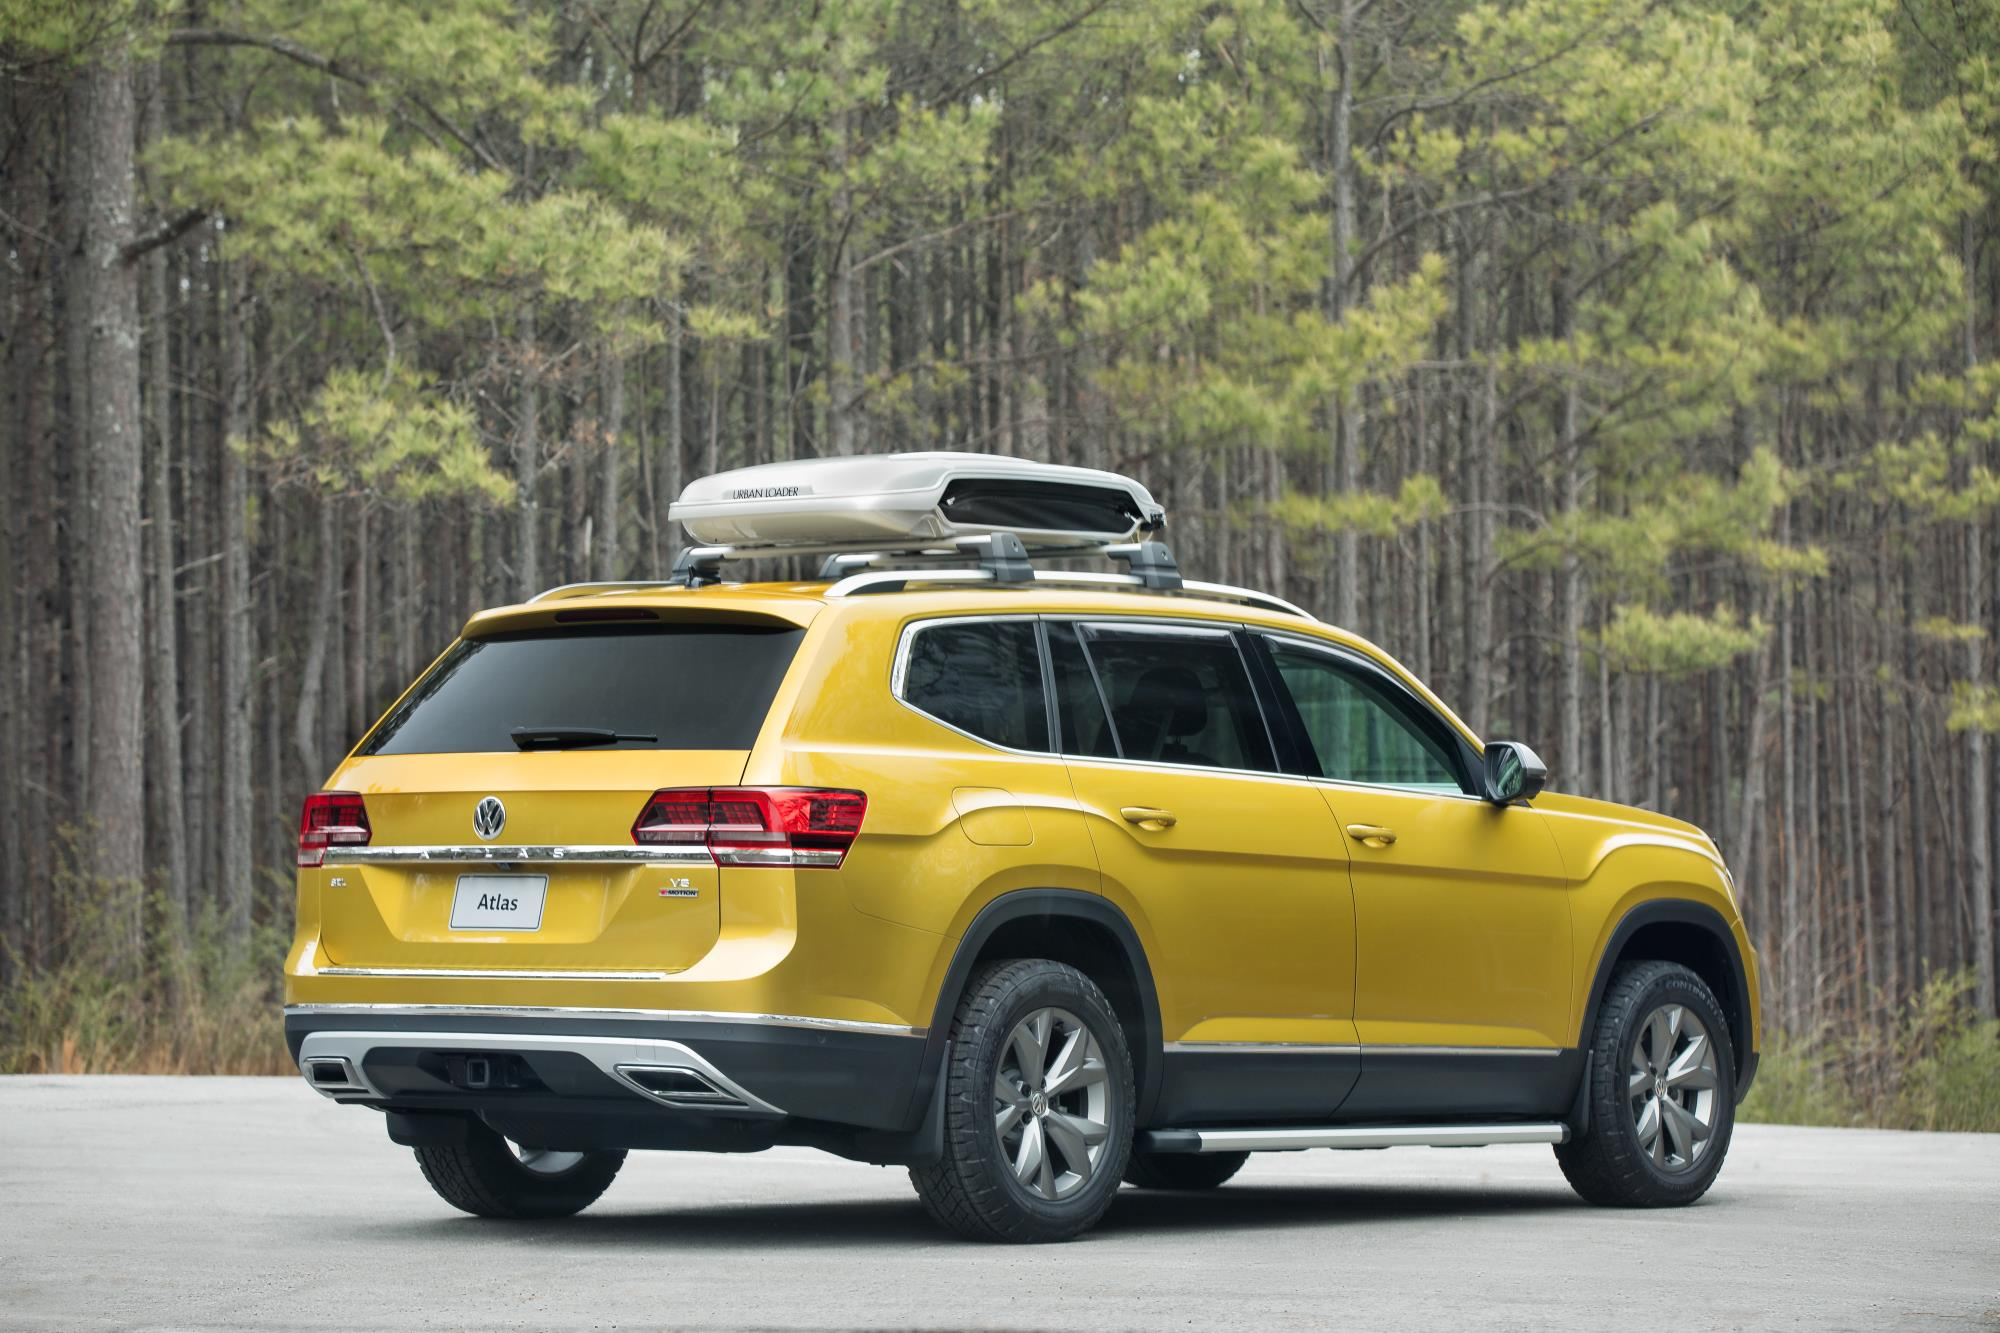 Volkswagen Atlas Weekend Edition Volkswagen Atlas Weekend Edition ... & A Volkswagen Atlas With A Roof Box Is An Adventure Vehicle ... Aboutintivar.Com